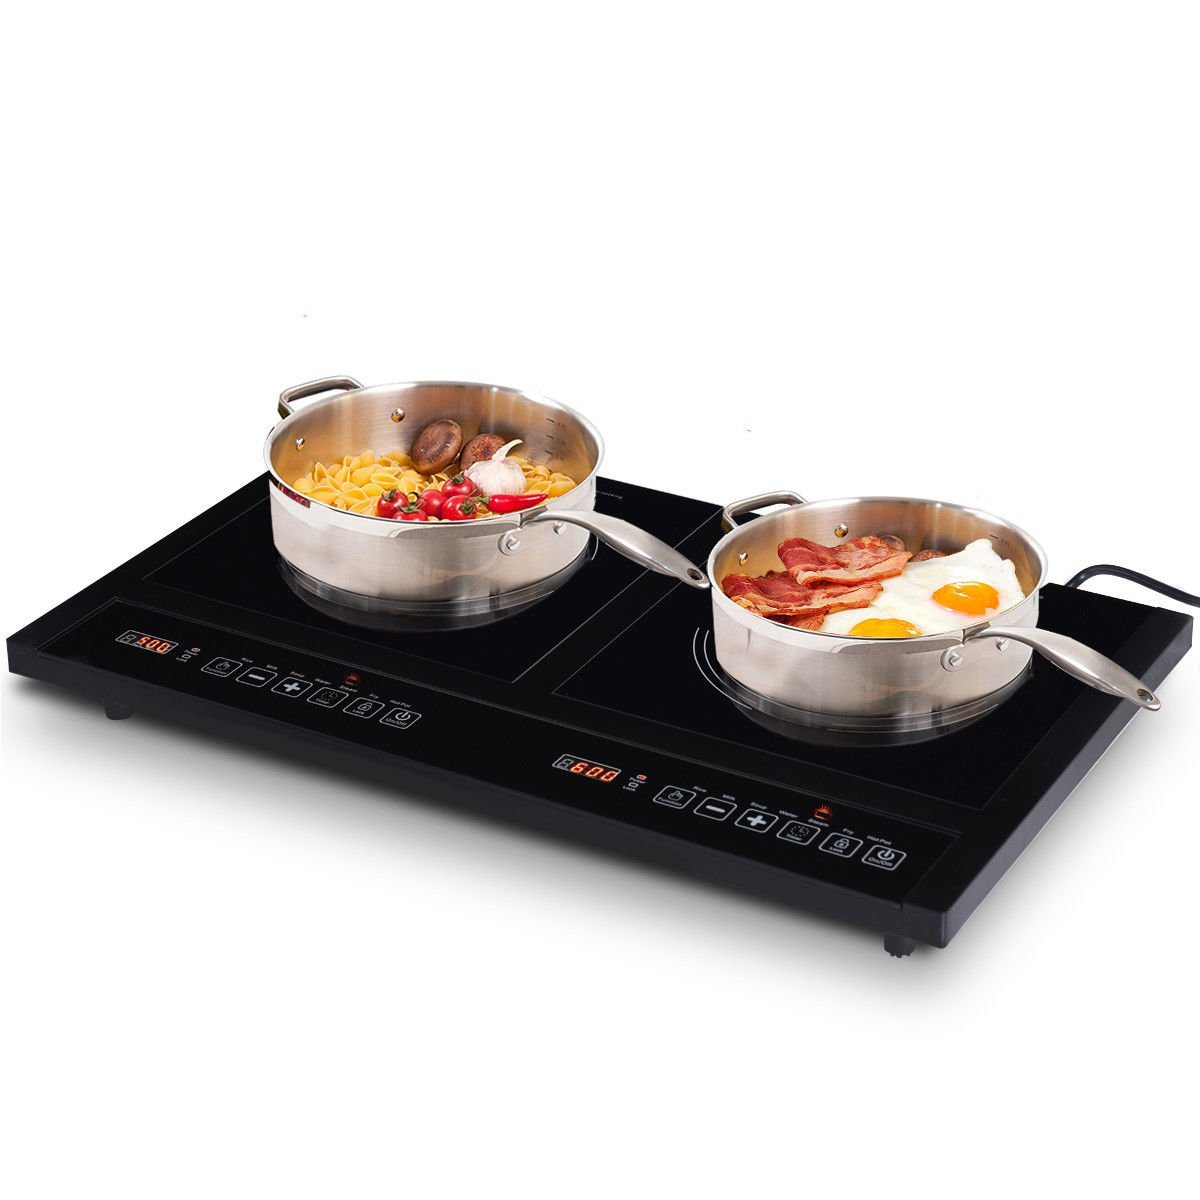 Costway 1800W Double Induction Cooktop Portable Electric Dual Hot Plate Countertop Burner w/ Digital Display